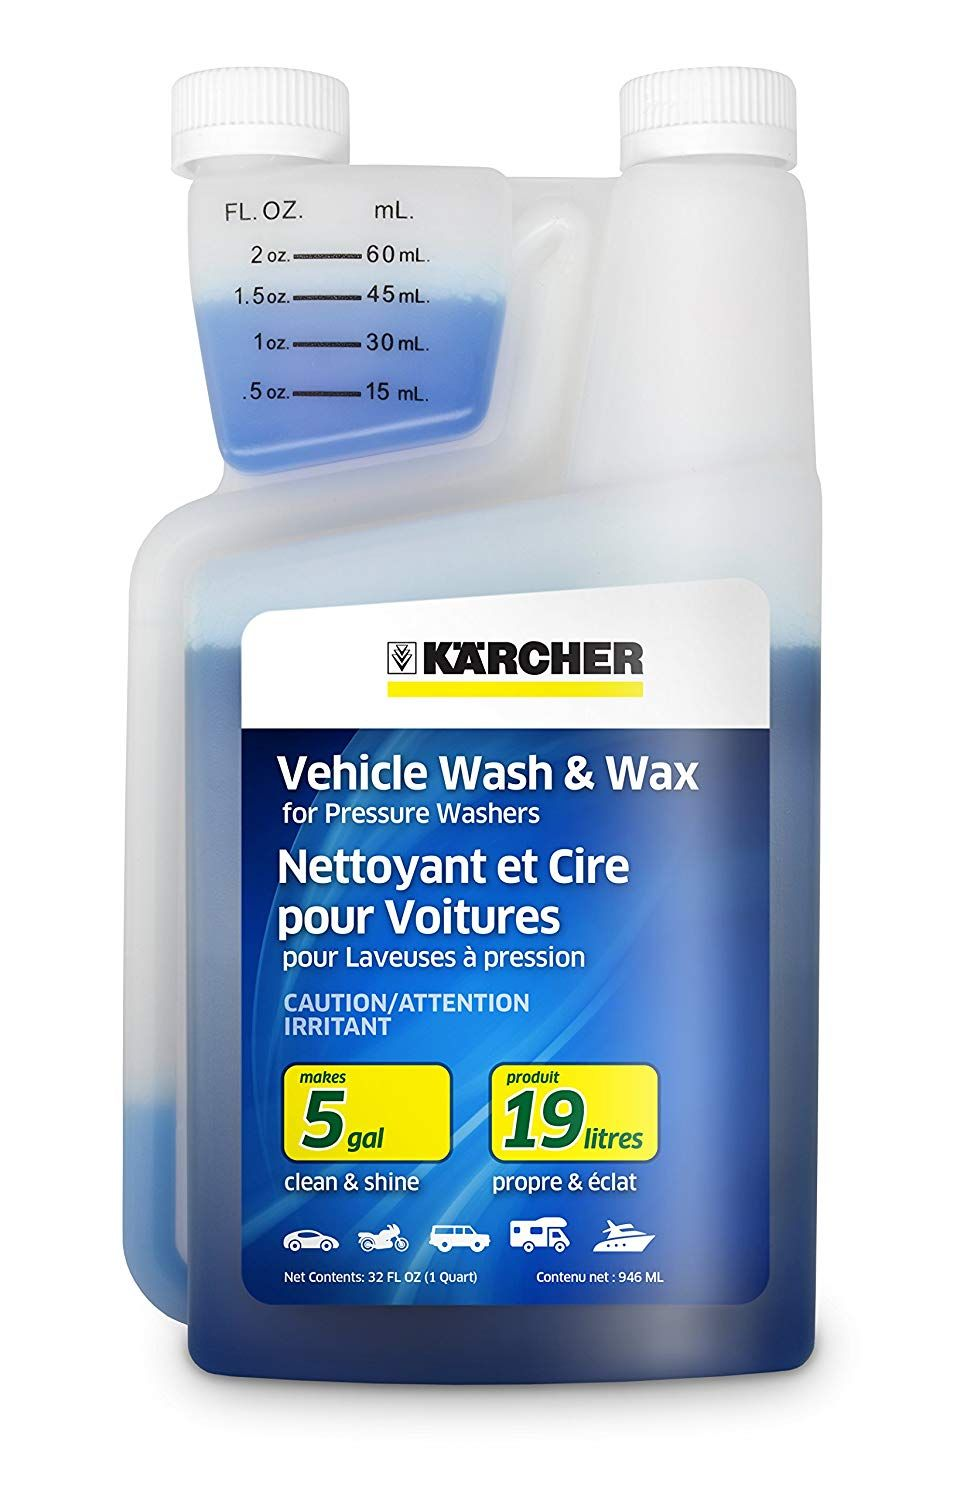 8 Best Pressure Washer Soaps/Detergents Reviews of 2020